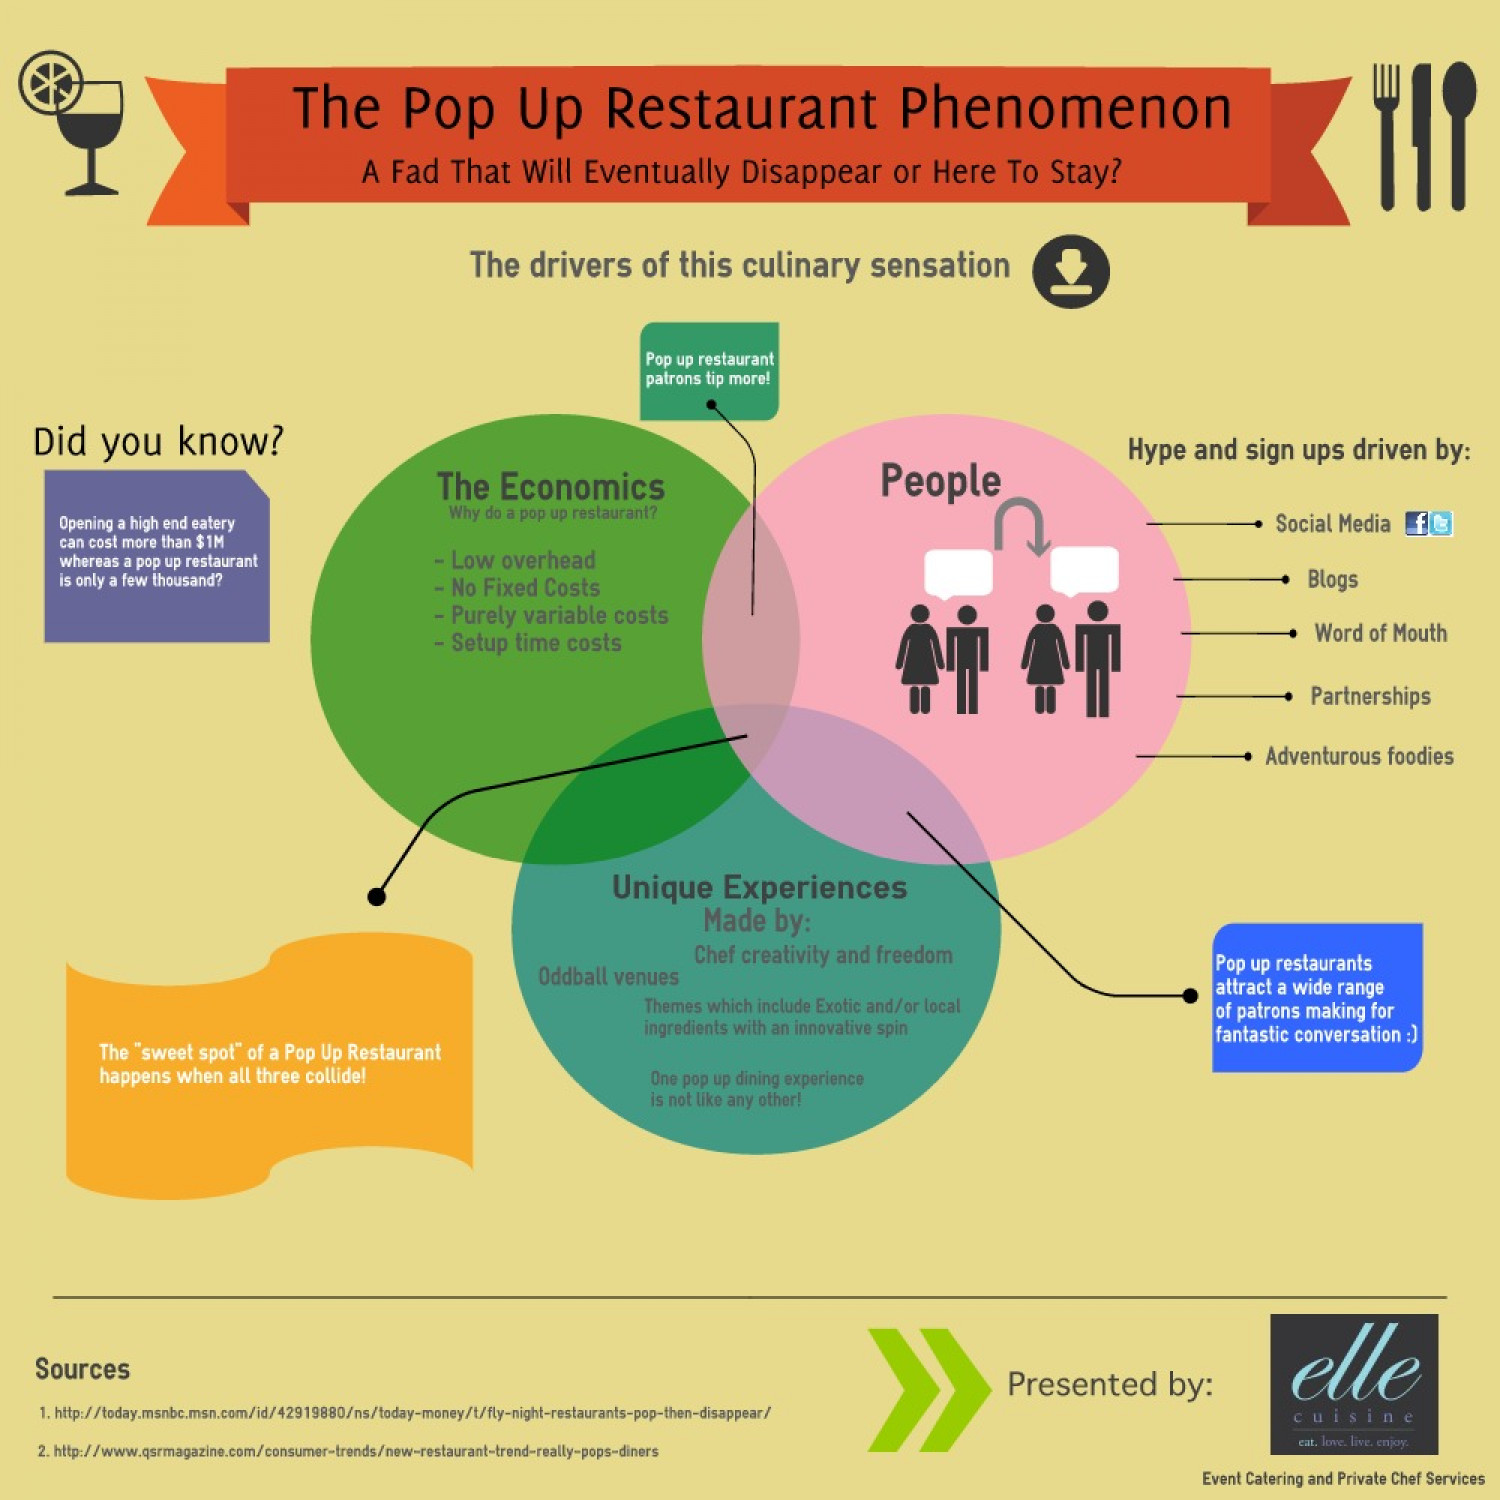 The Pop Up Restaurant Phenomenon Infographic